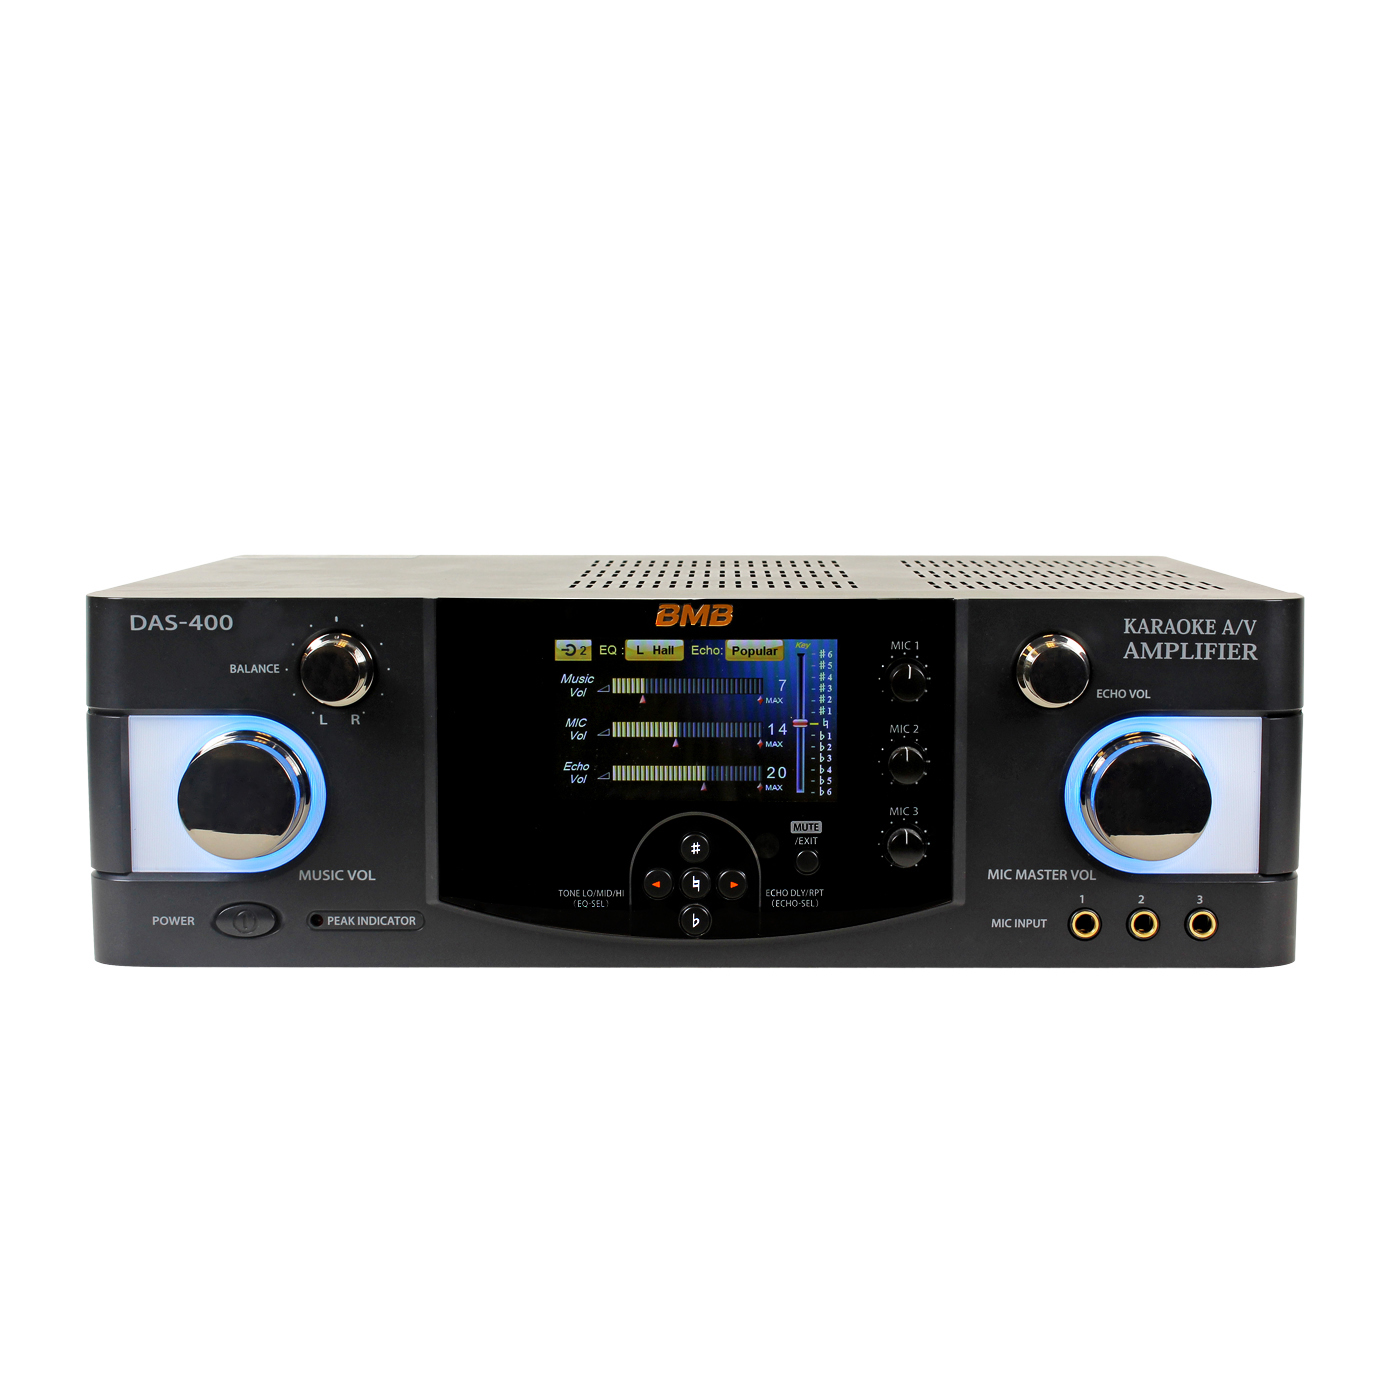 BMB DAS-400 600 Watts Karaoke 4 Channels Amplifier with BMB CSV-450 Speaker  with Stands